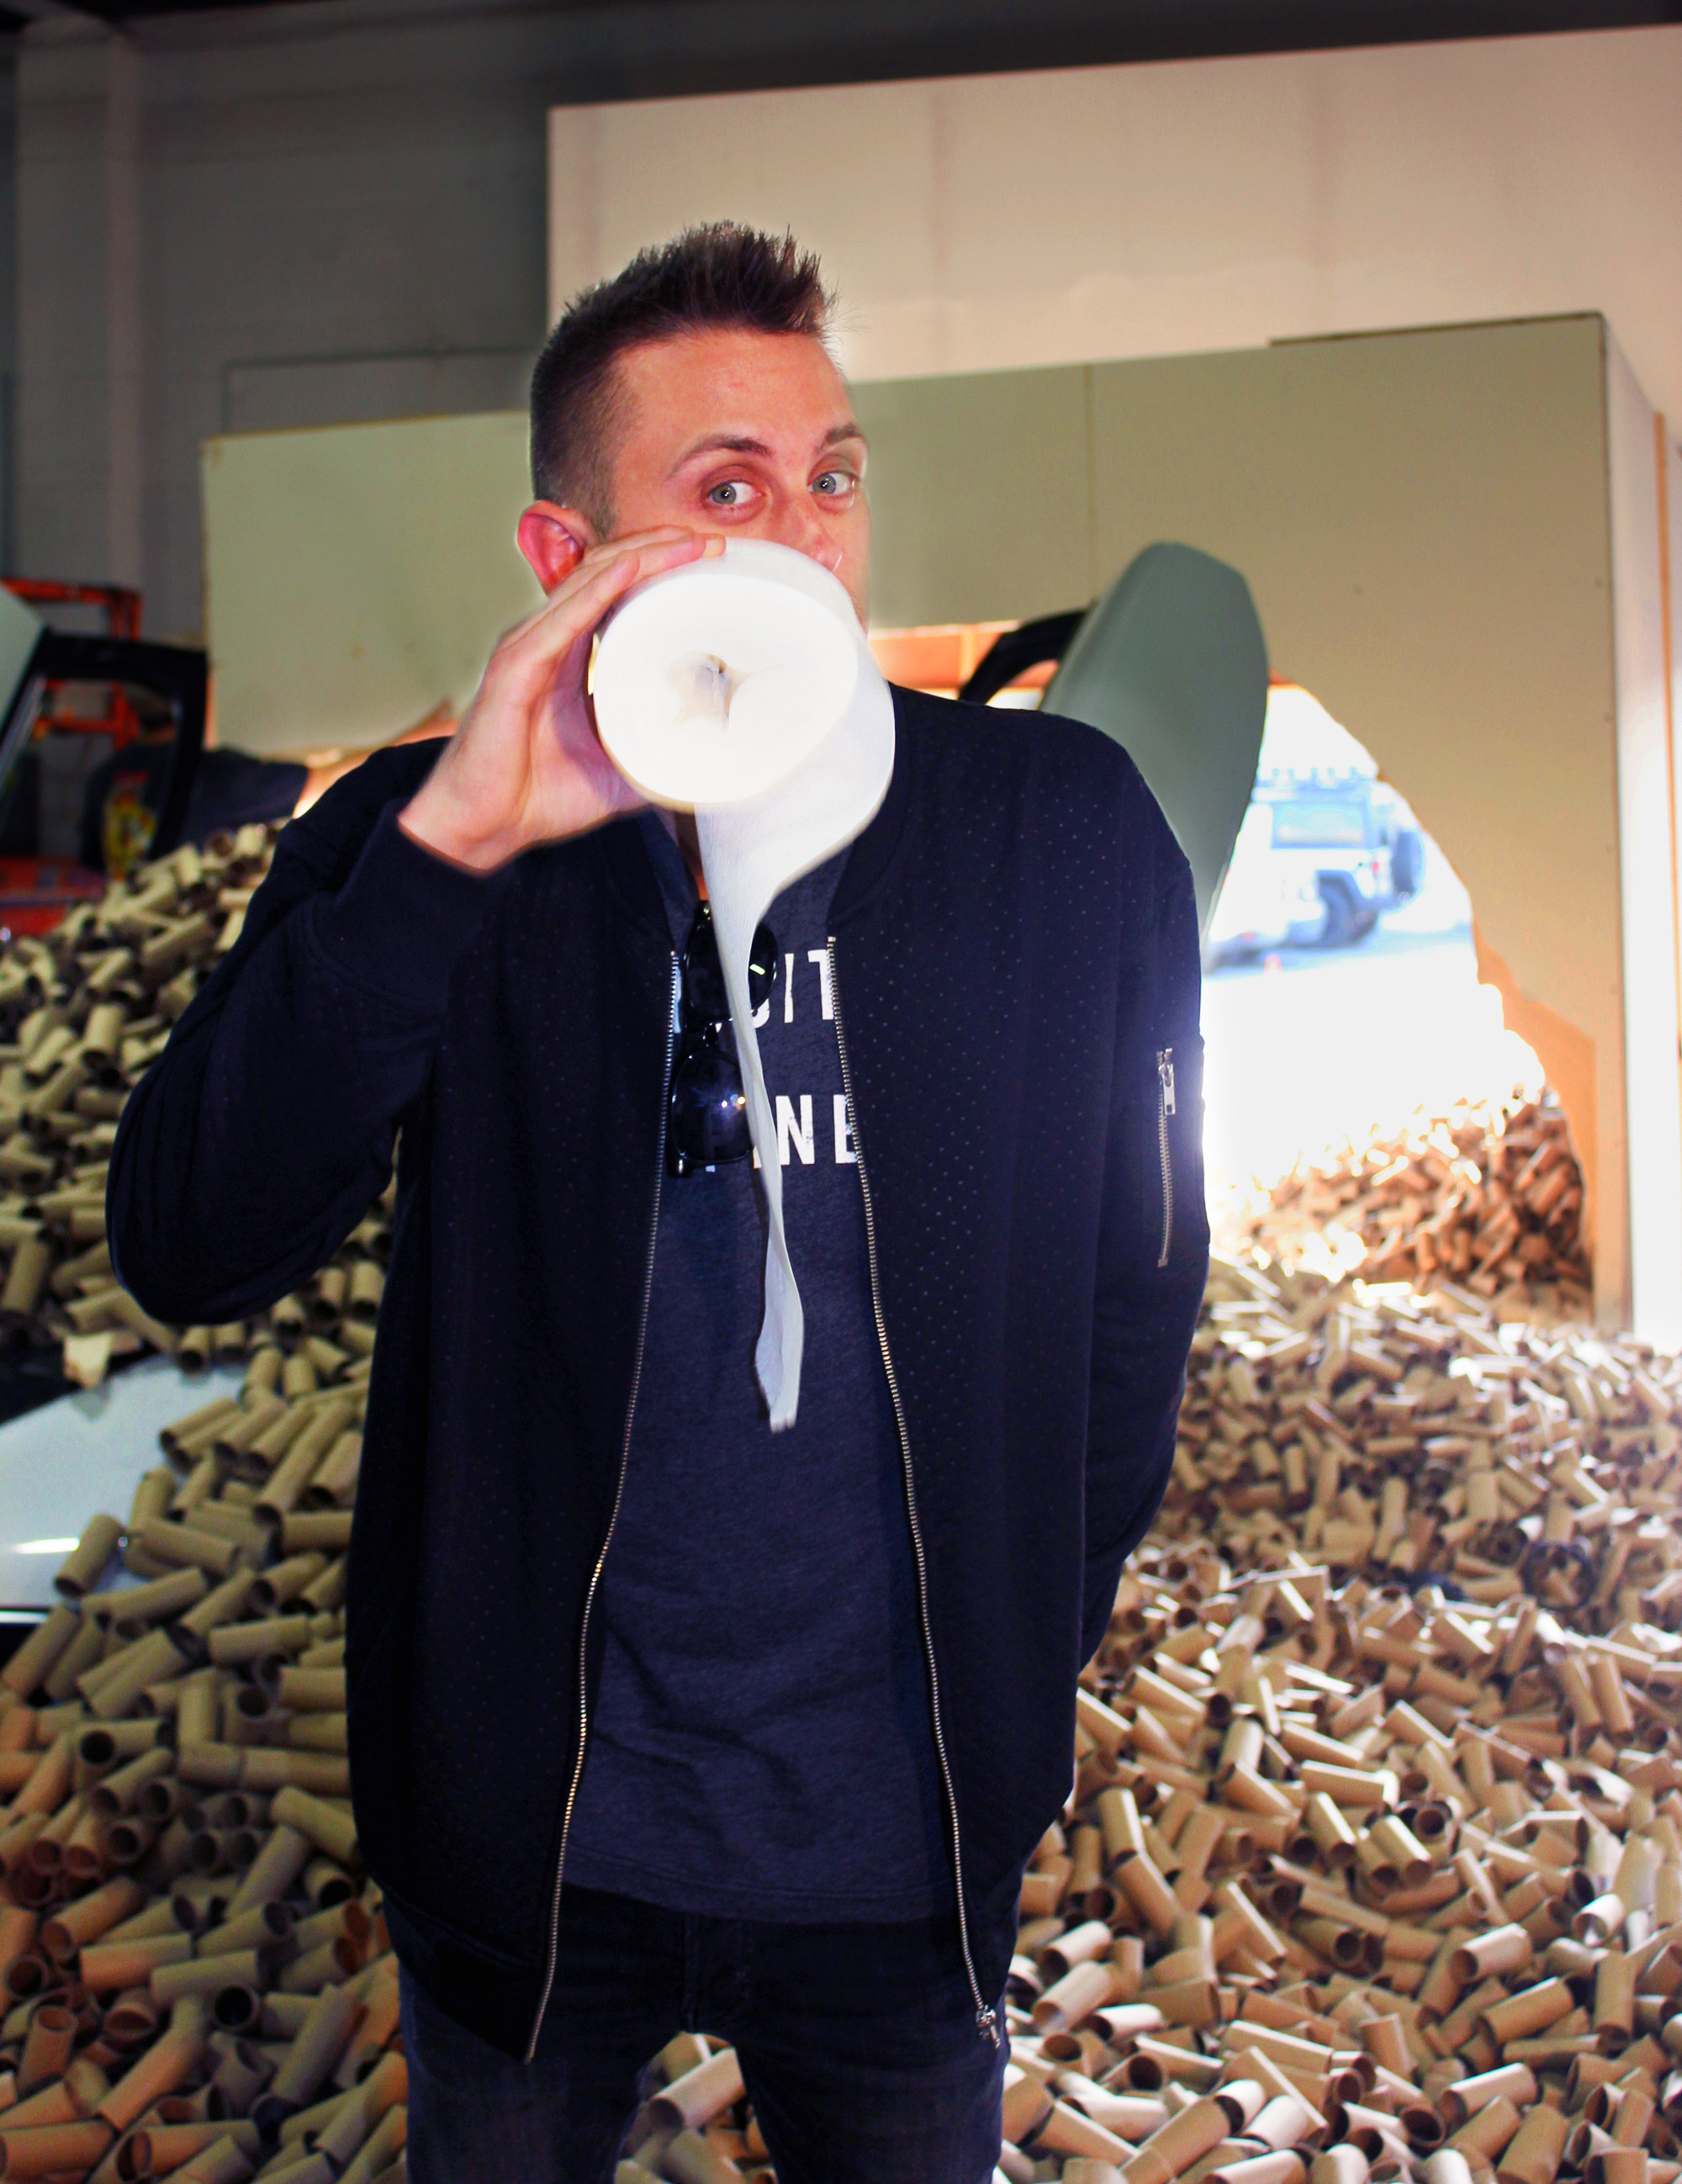 The video created by the toilet paper brand and stuntman captures the truly shocking fact that 66,000 tubes used in the stunt, the number of tubes that Americans use in just over two minutes in a highly visual and fun way.